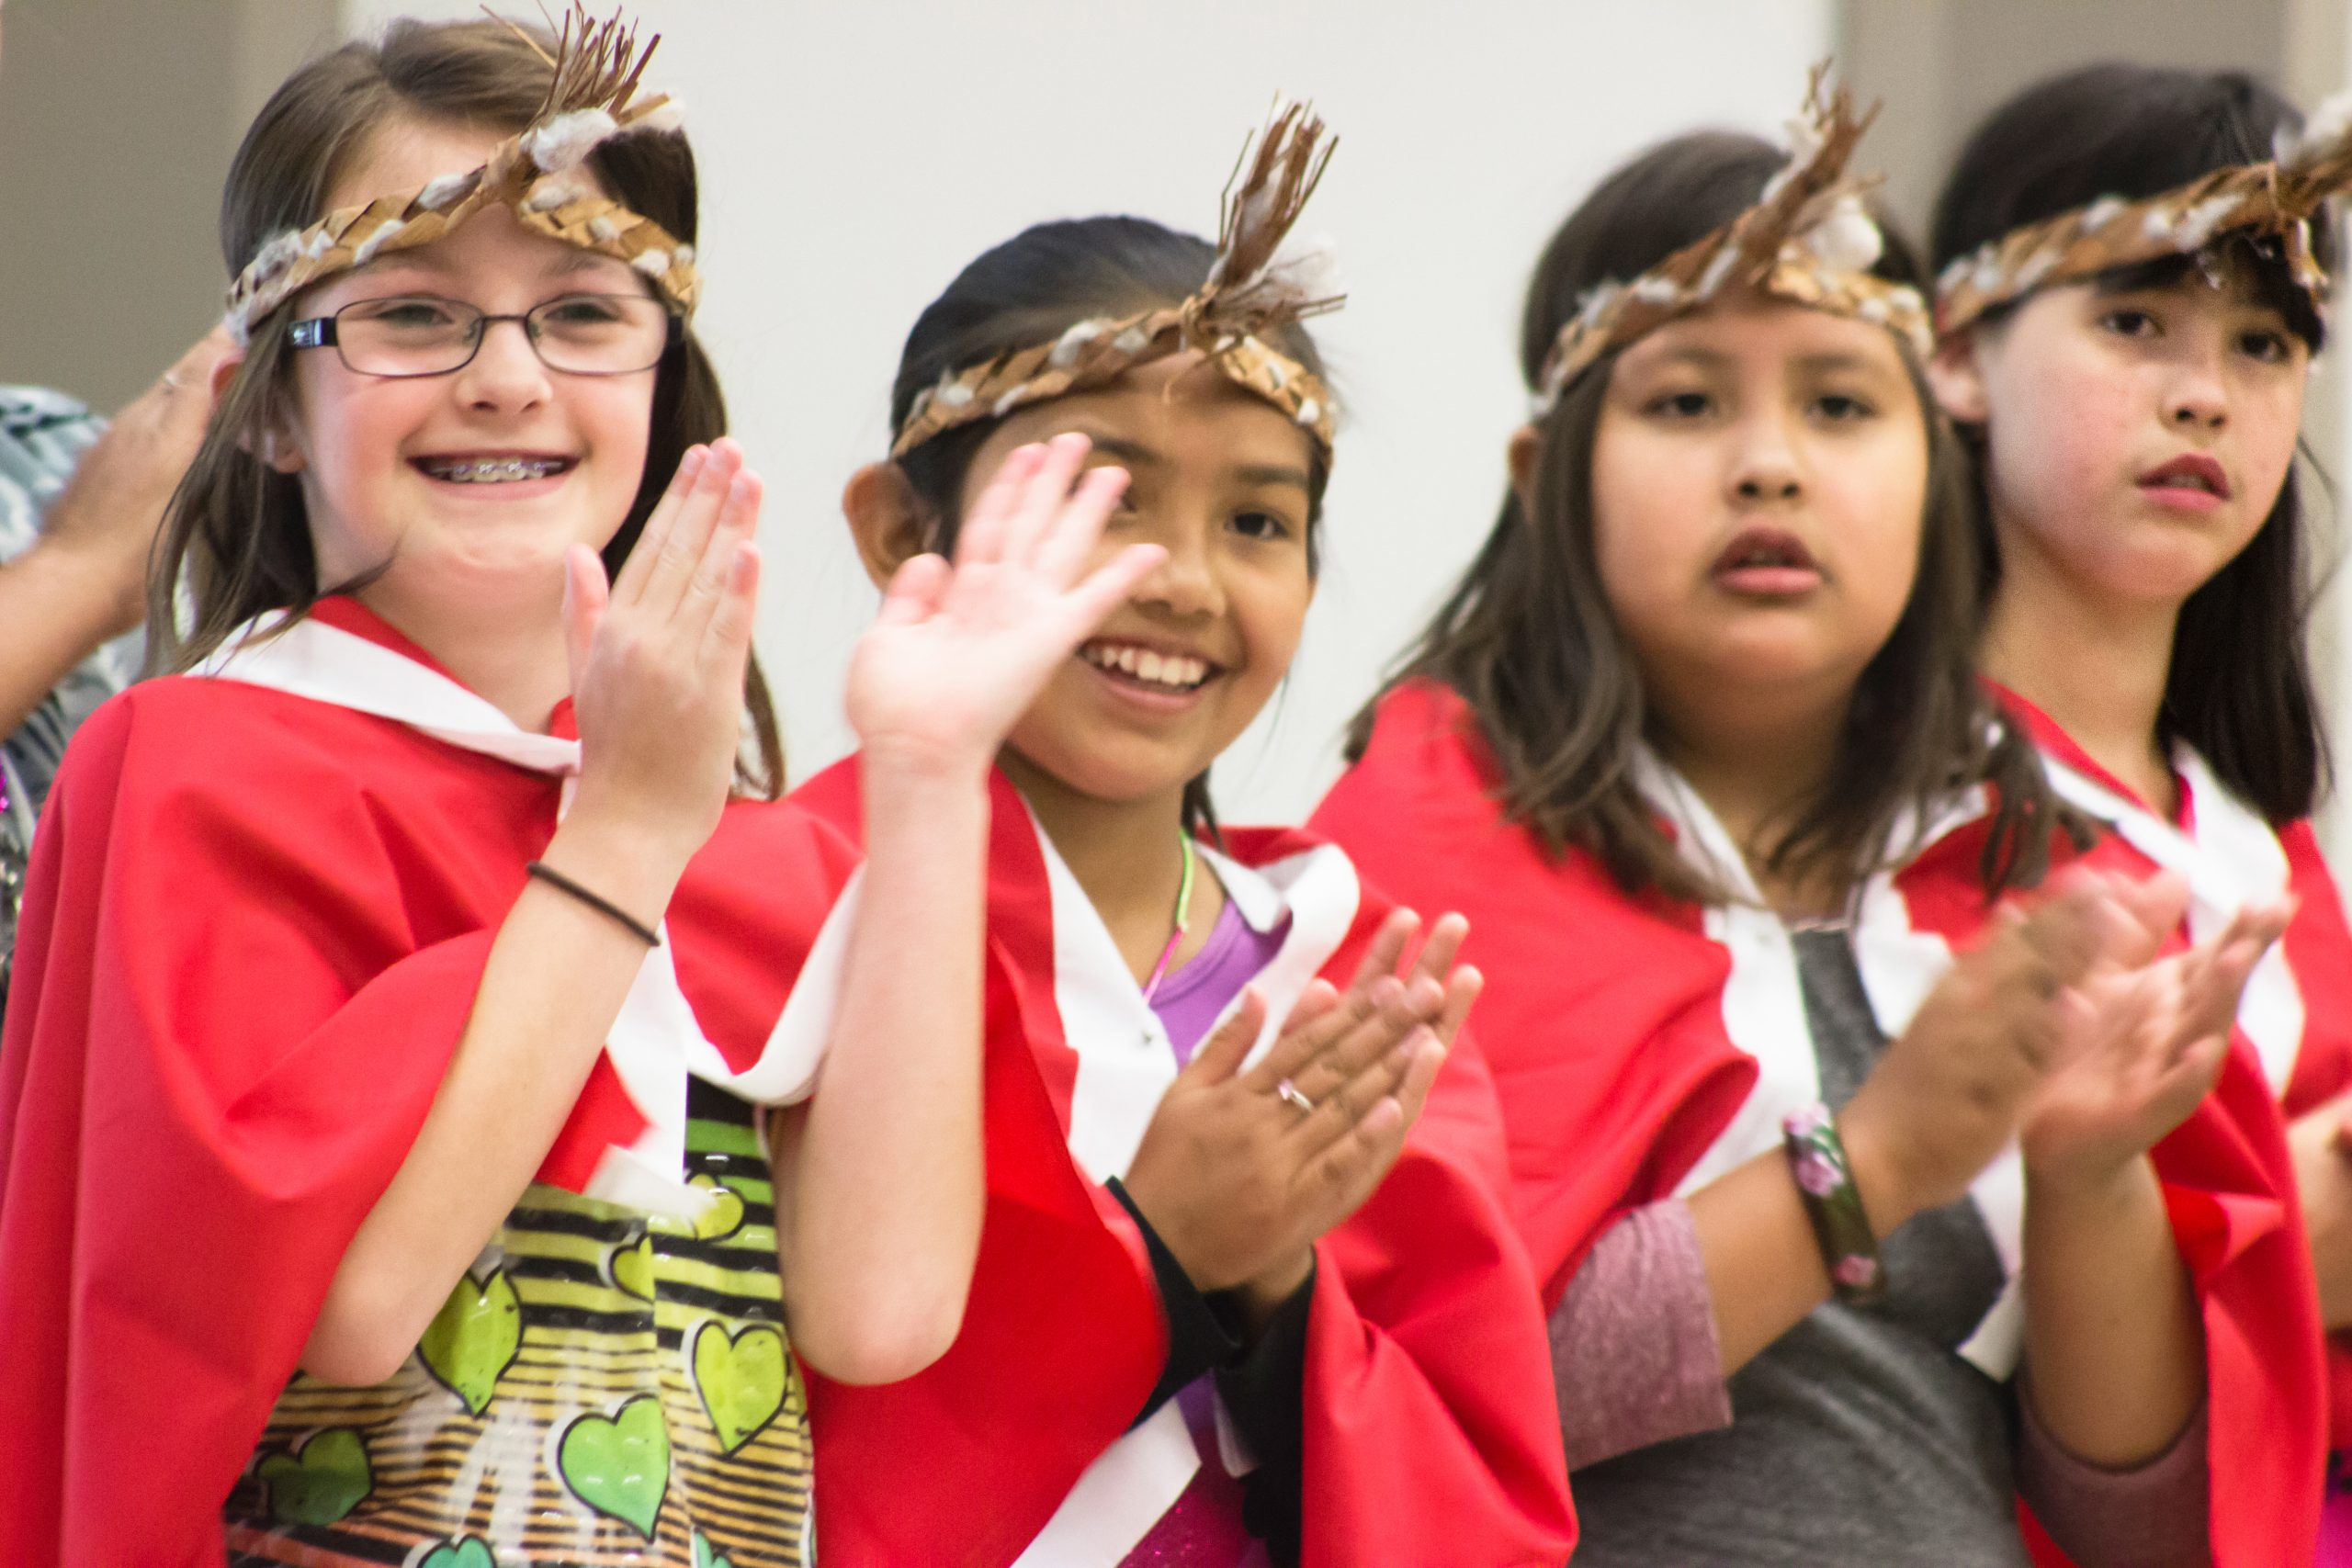 Students from Sema:th First Nation, Stó:lō First Nation and local Métis communities celebrating National Aboriginal Day 2015 after class. Credits to: province of BC